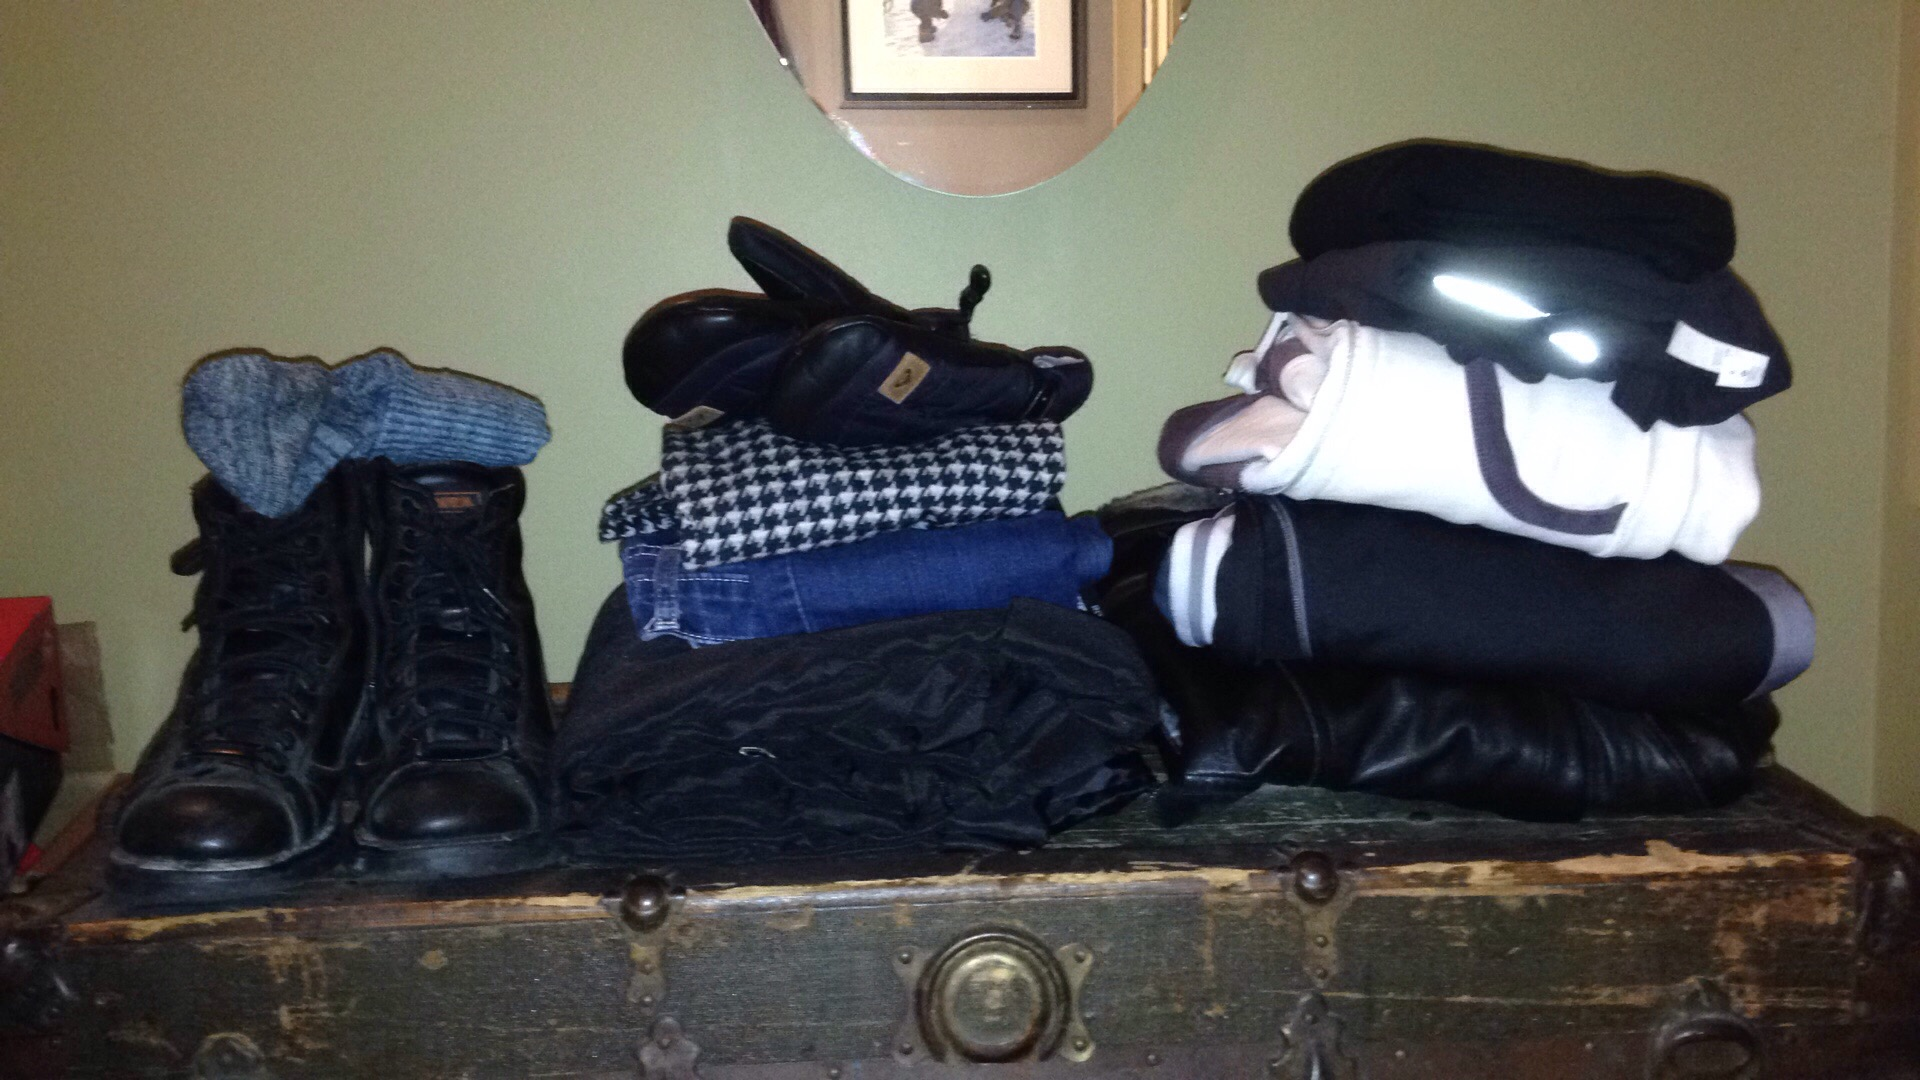 This is all the clothing I had on, I may have gotten a little carried away,....